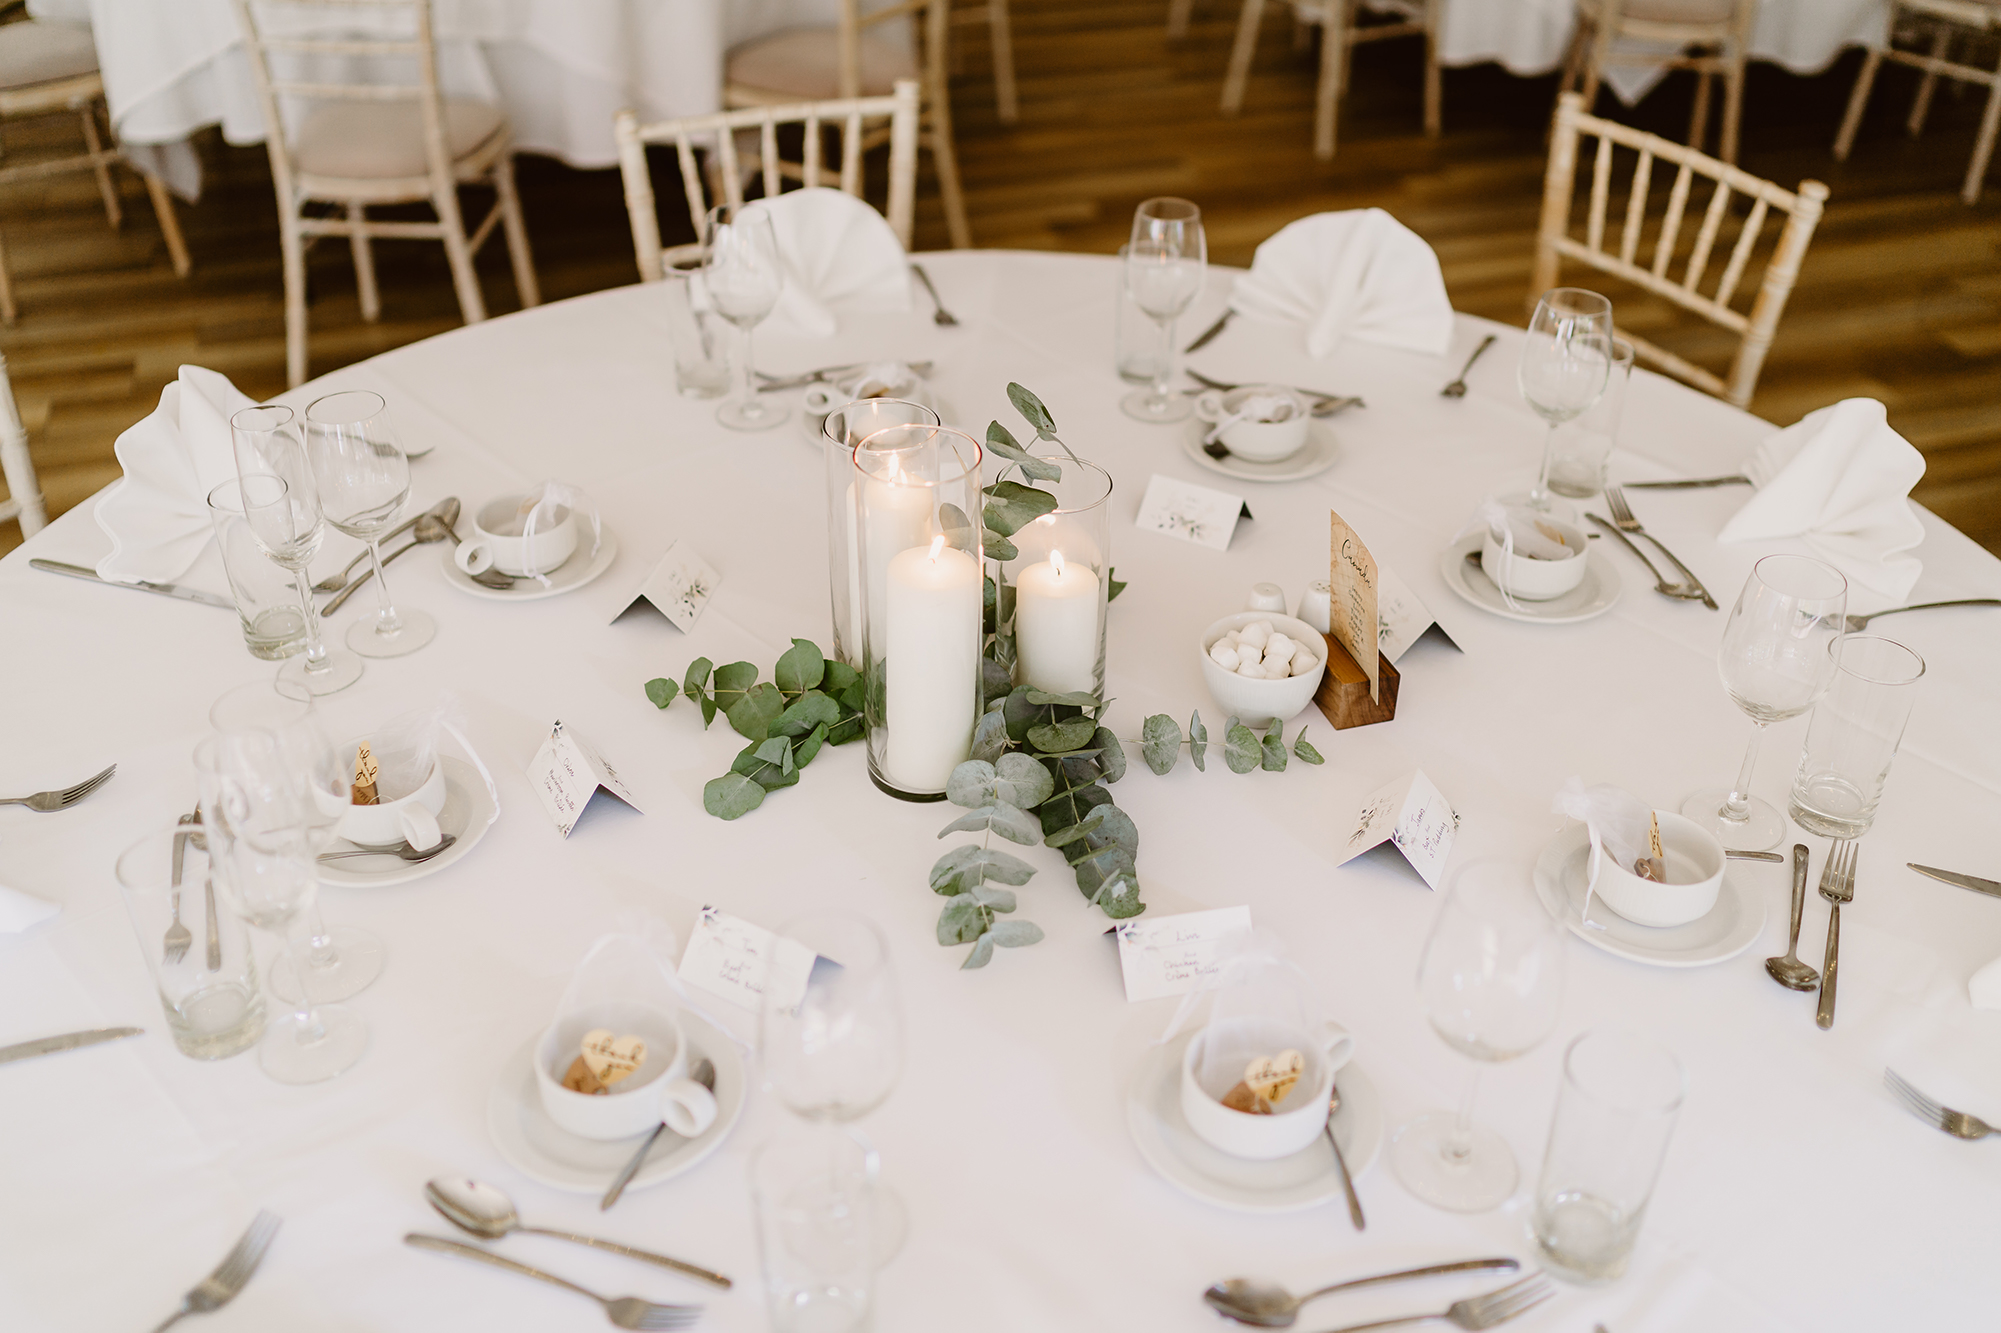 Classic Wedding Table Setting With Eucalyptus Center Piece at Ivy House Country Hotel